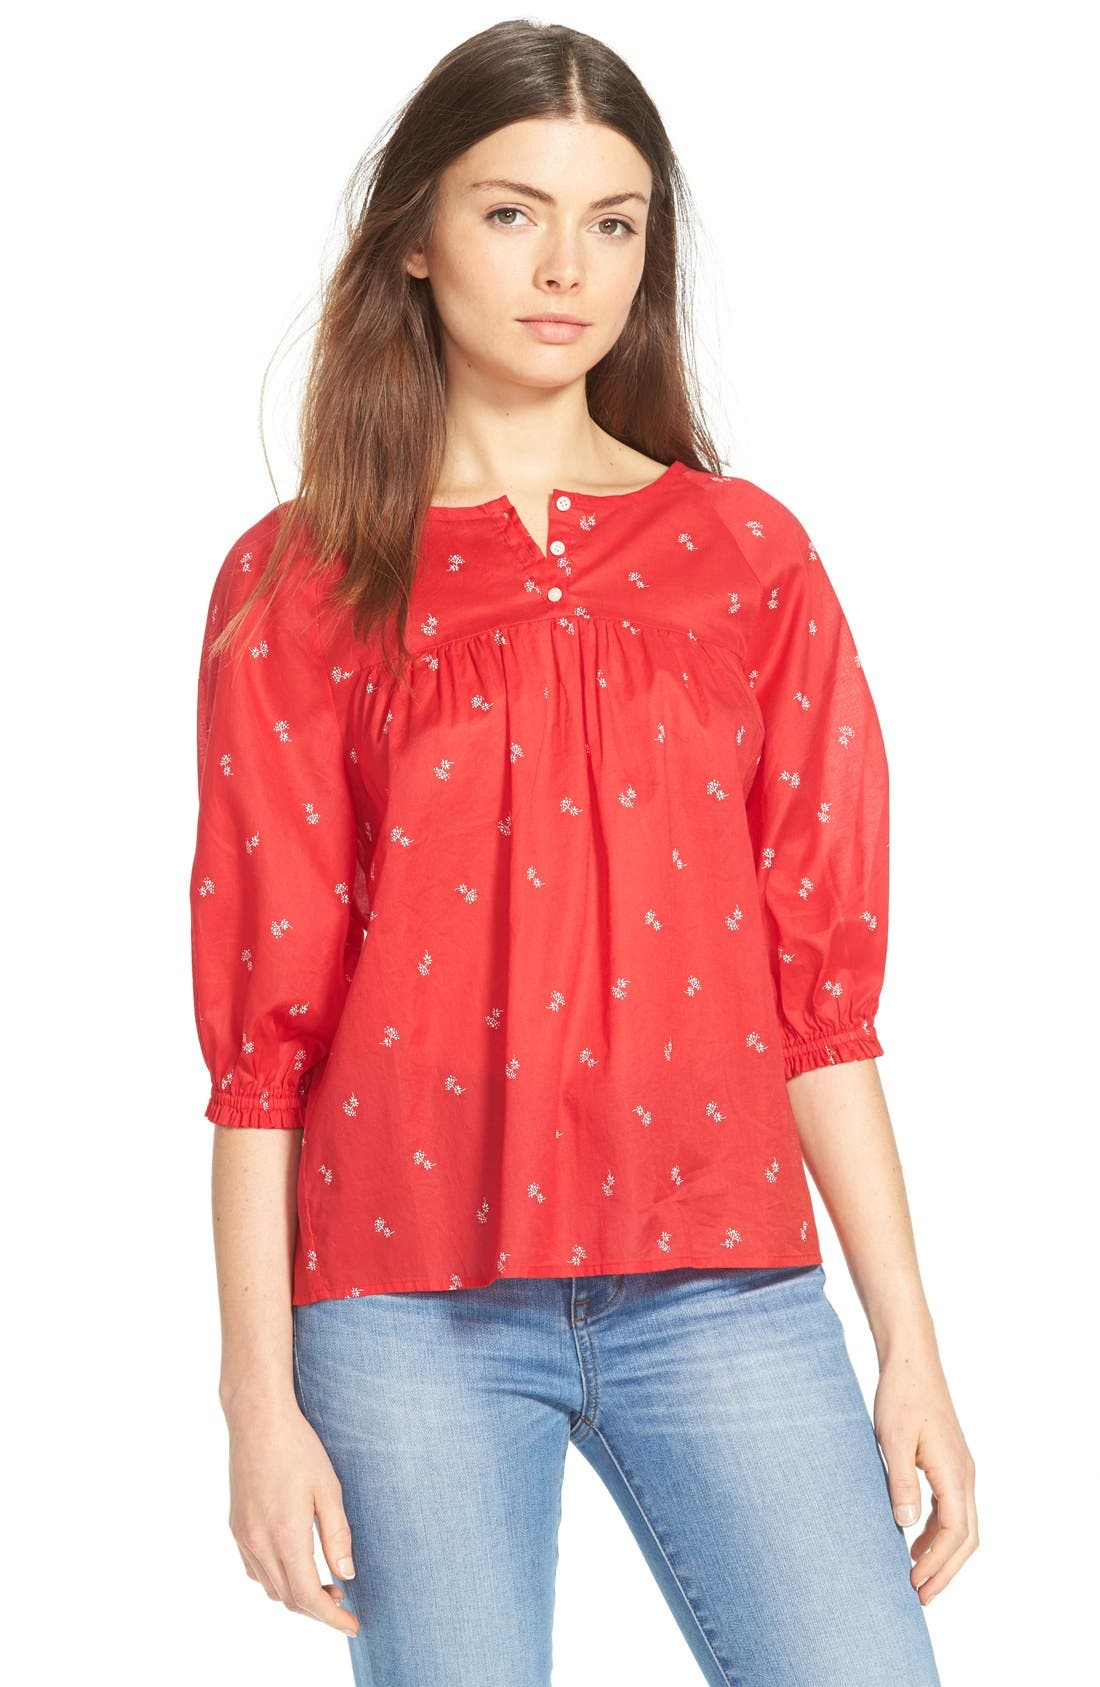 Main Image - Madewell 'Bouquet Scatter' Shirred Peasant Top